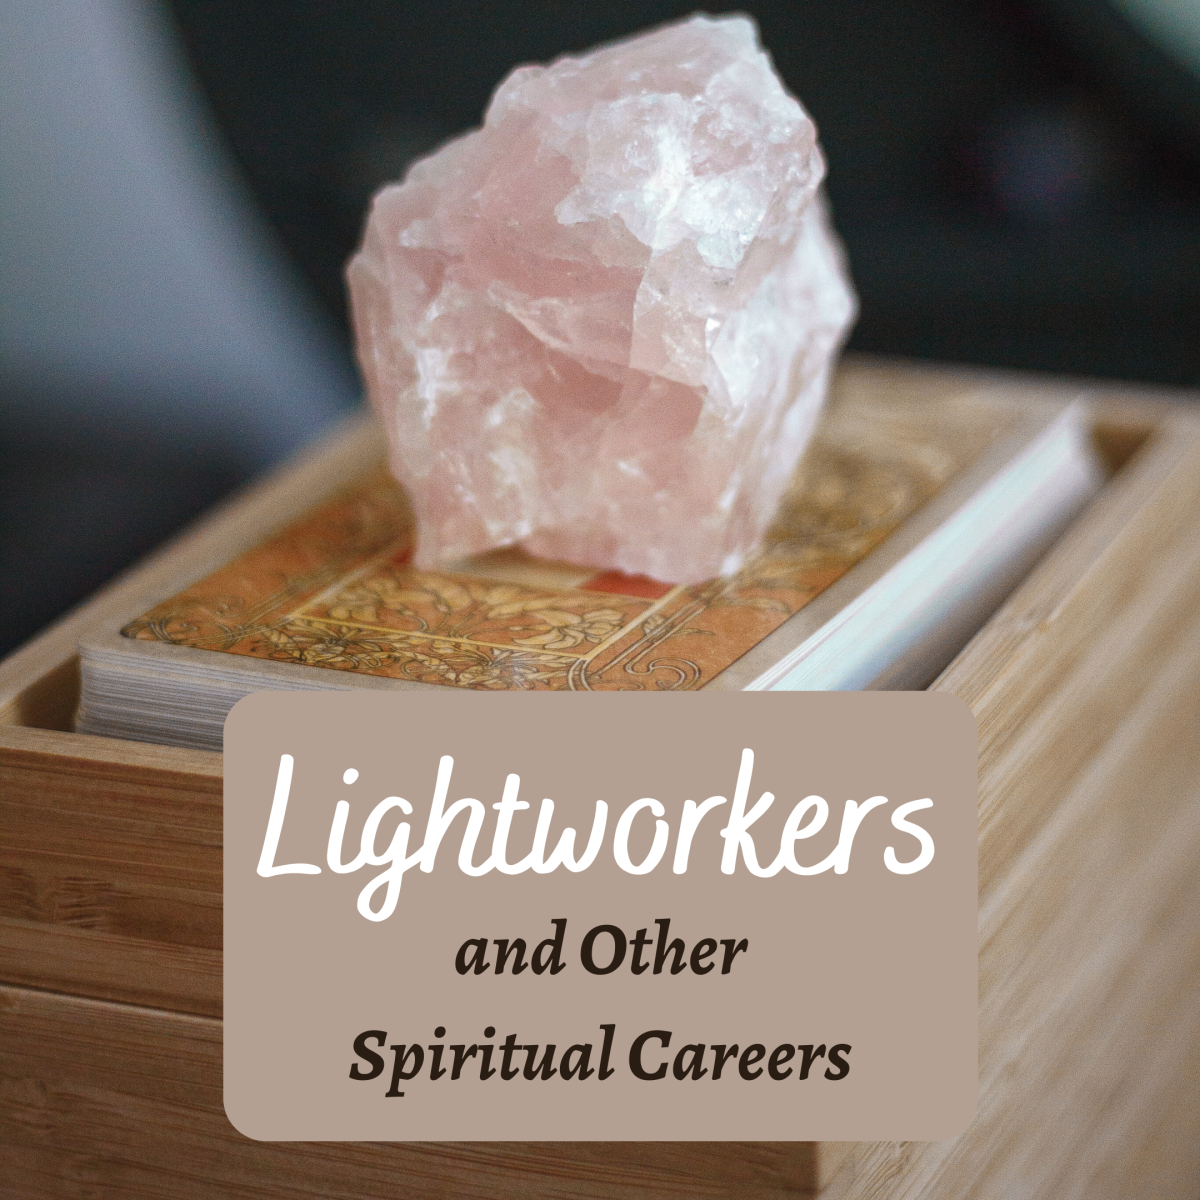 How to Turn Your Spirituality Into Your Career